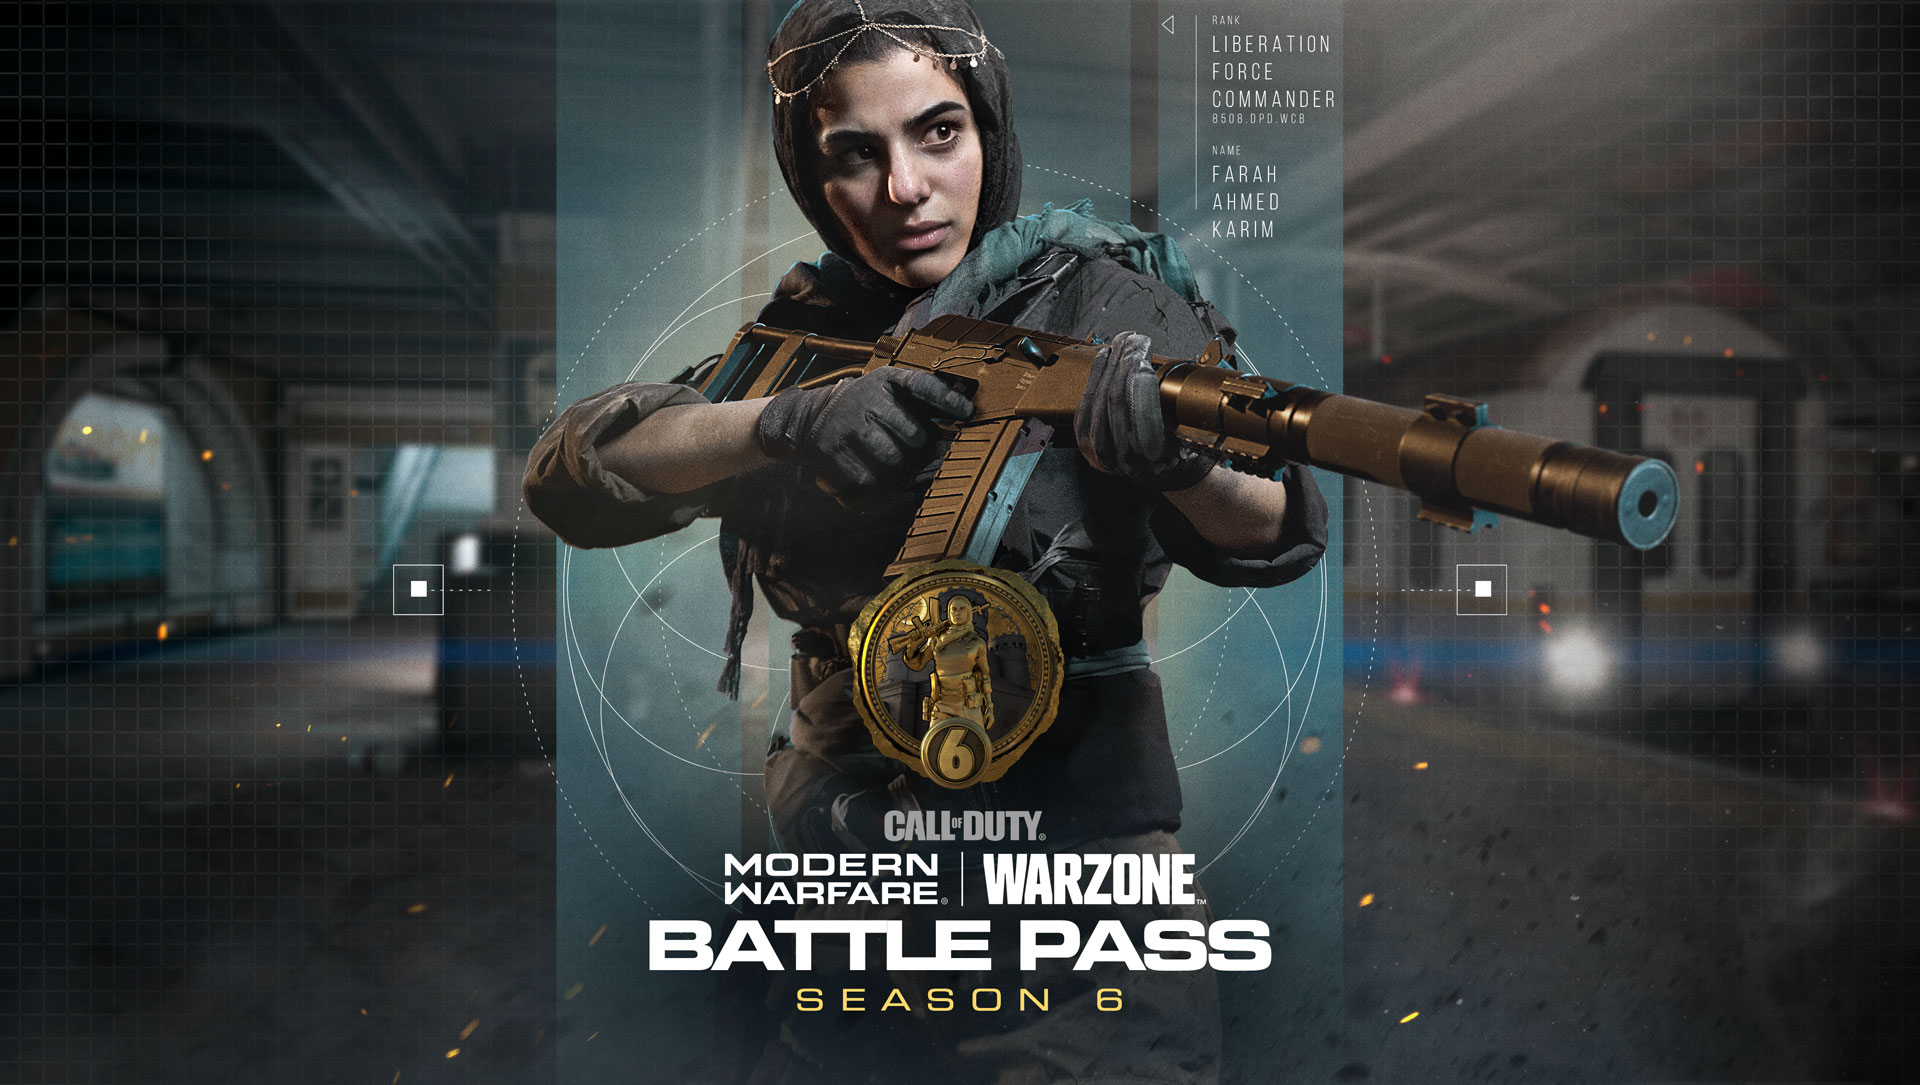 Call of Duty Modern Warfare Season 6 Battle Pass.